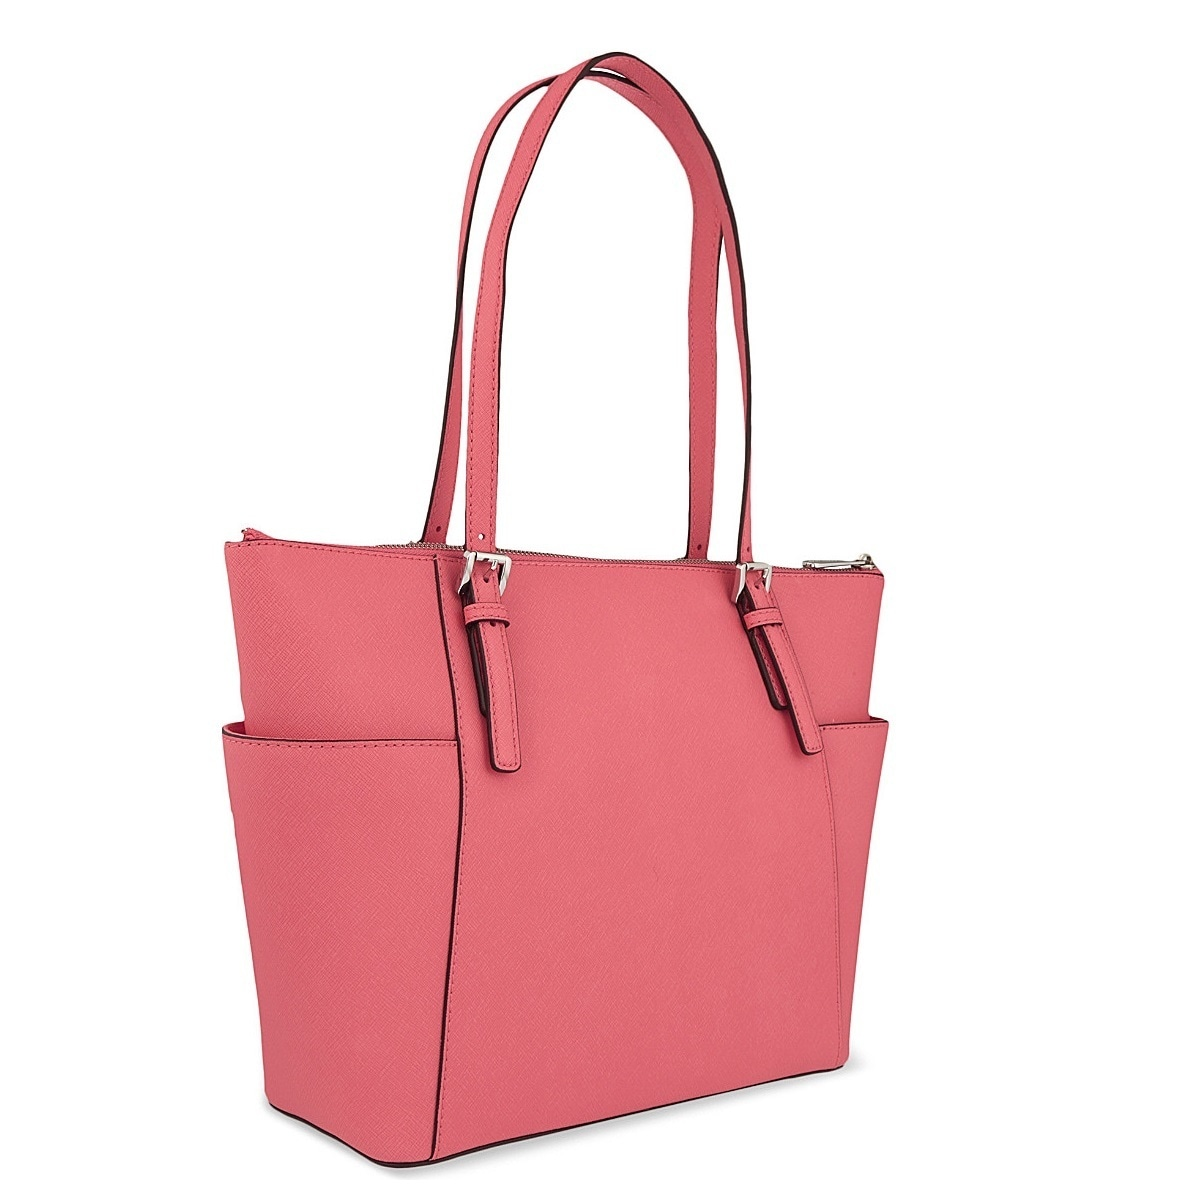 1fdd6c0d293c Shop Michael Kors Jet Set Medium Coral Pocketed Top Zip Tote Bag - Free  Shipping Today - Overstock - 11365274